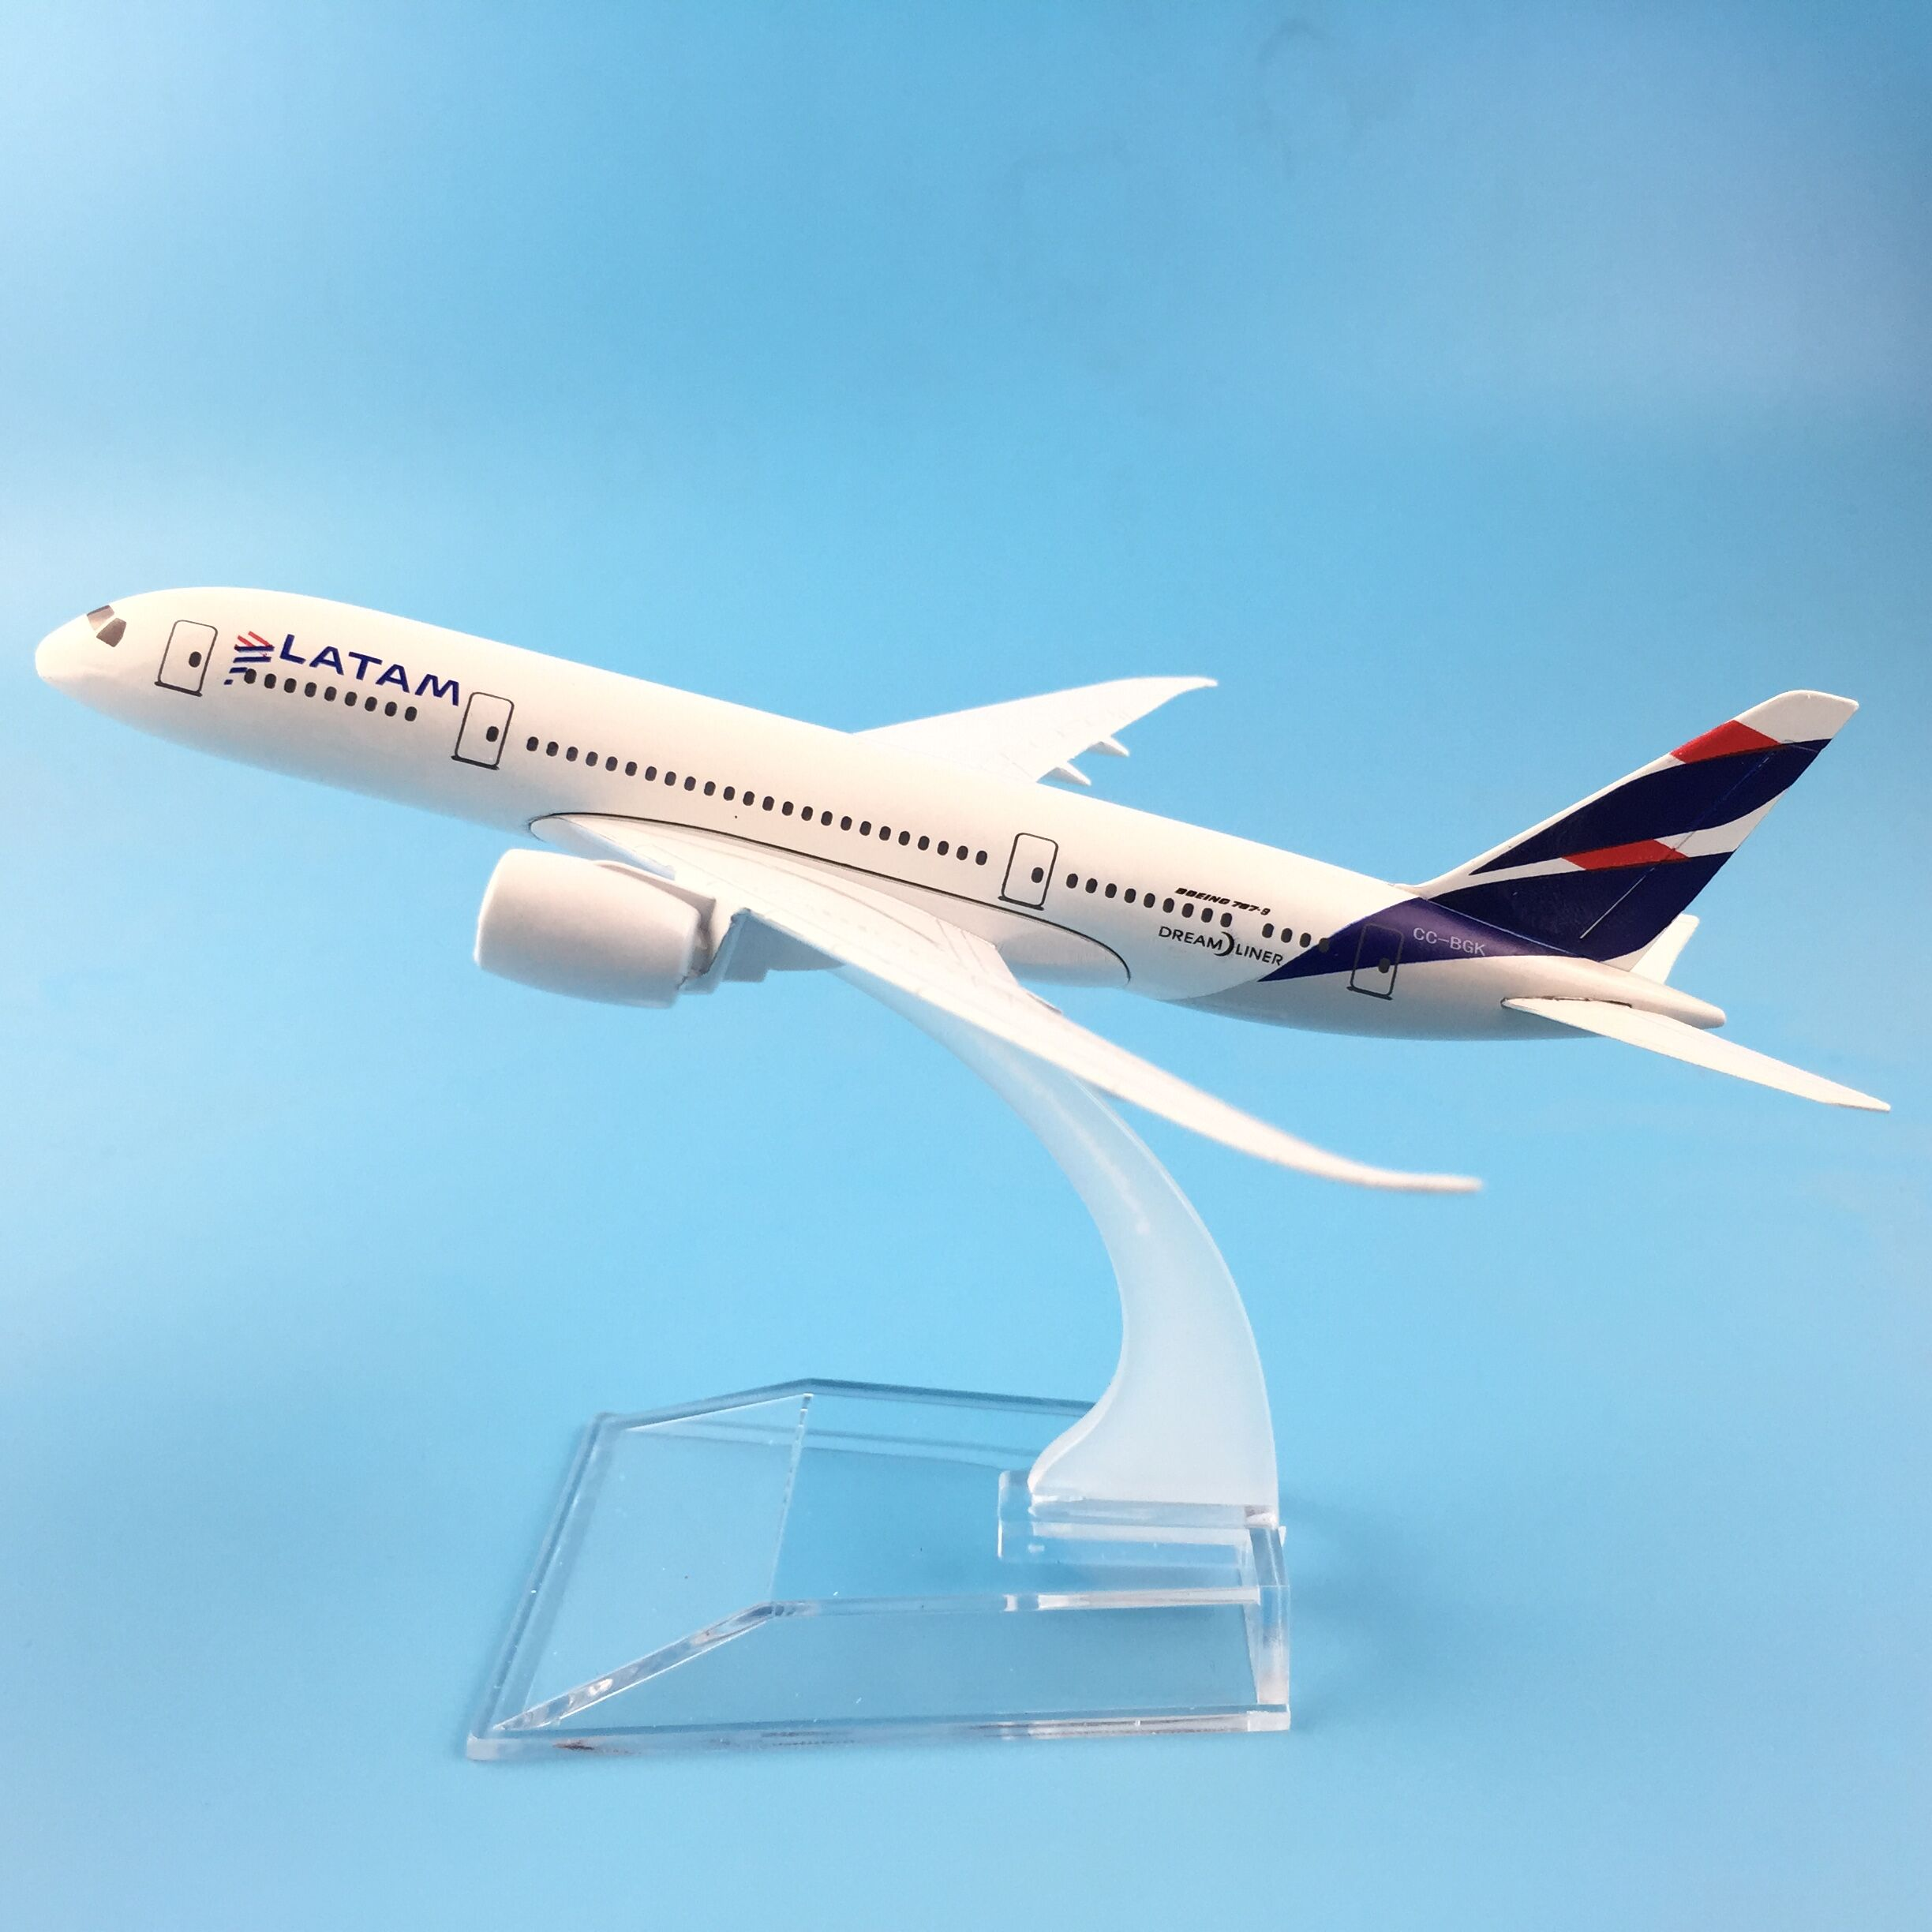 16CM LATAM Plane Aircraft Alloy Metal Model Airplane Model W Stand Kids Toys Children New Year/Birthday/Collections Gifts